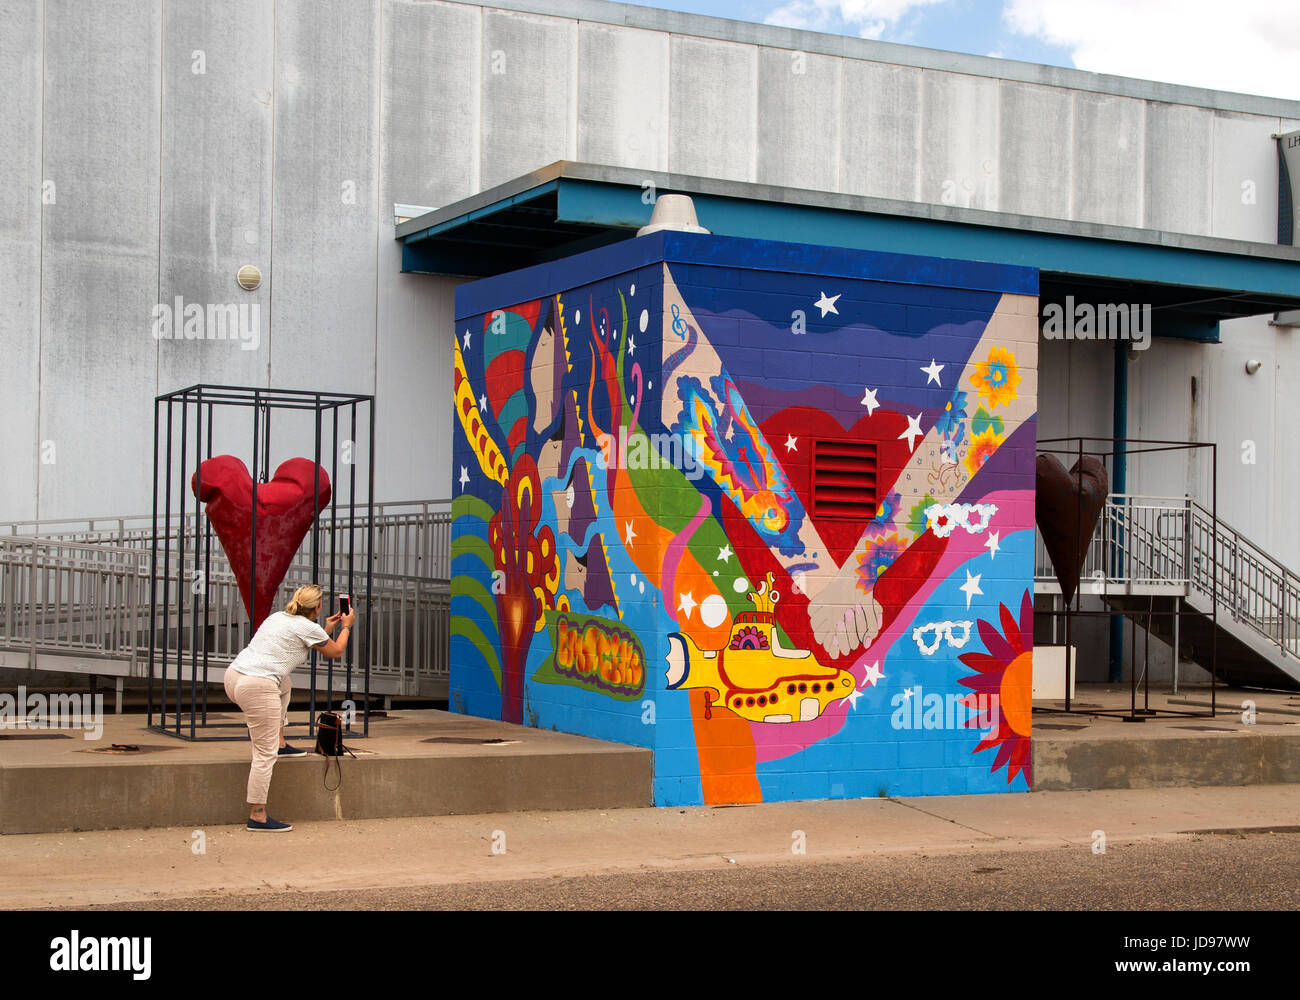 Woman taking photos of street art in the Depot District of Lubbock Texas - Stock Image